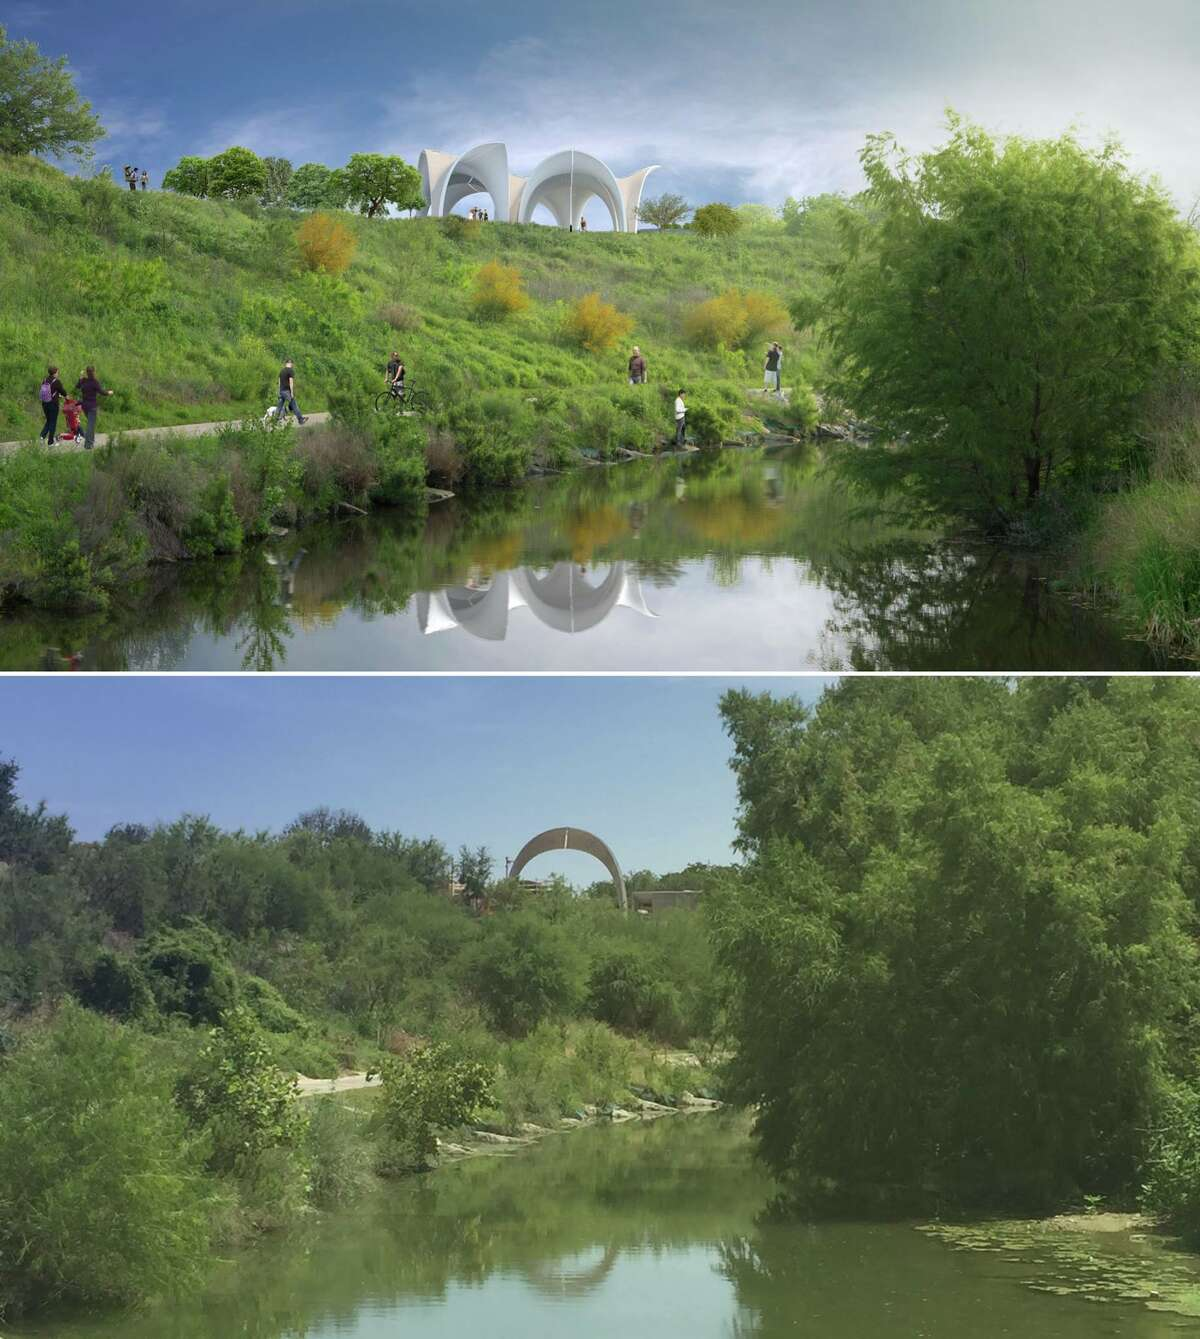 The top photo shows a rendering of what Confluence Park will look like when construction is finished, and the bottom photo shows park of a pavilion put up in July 2017.